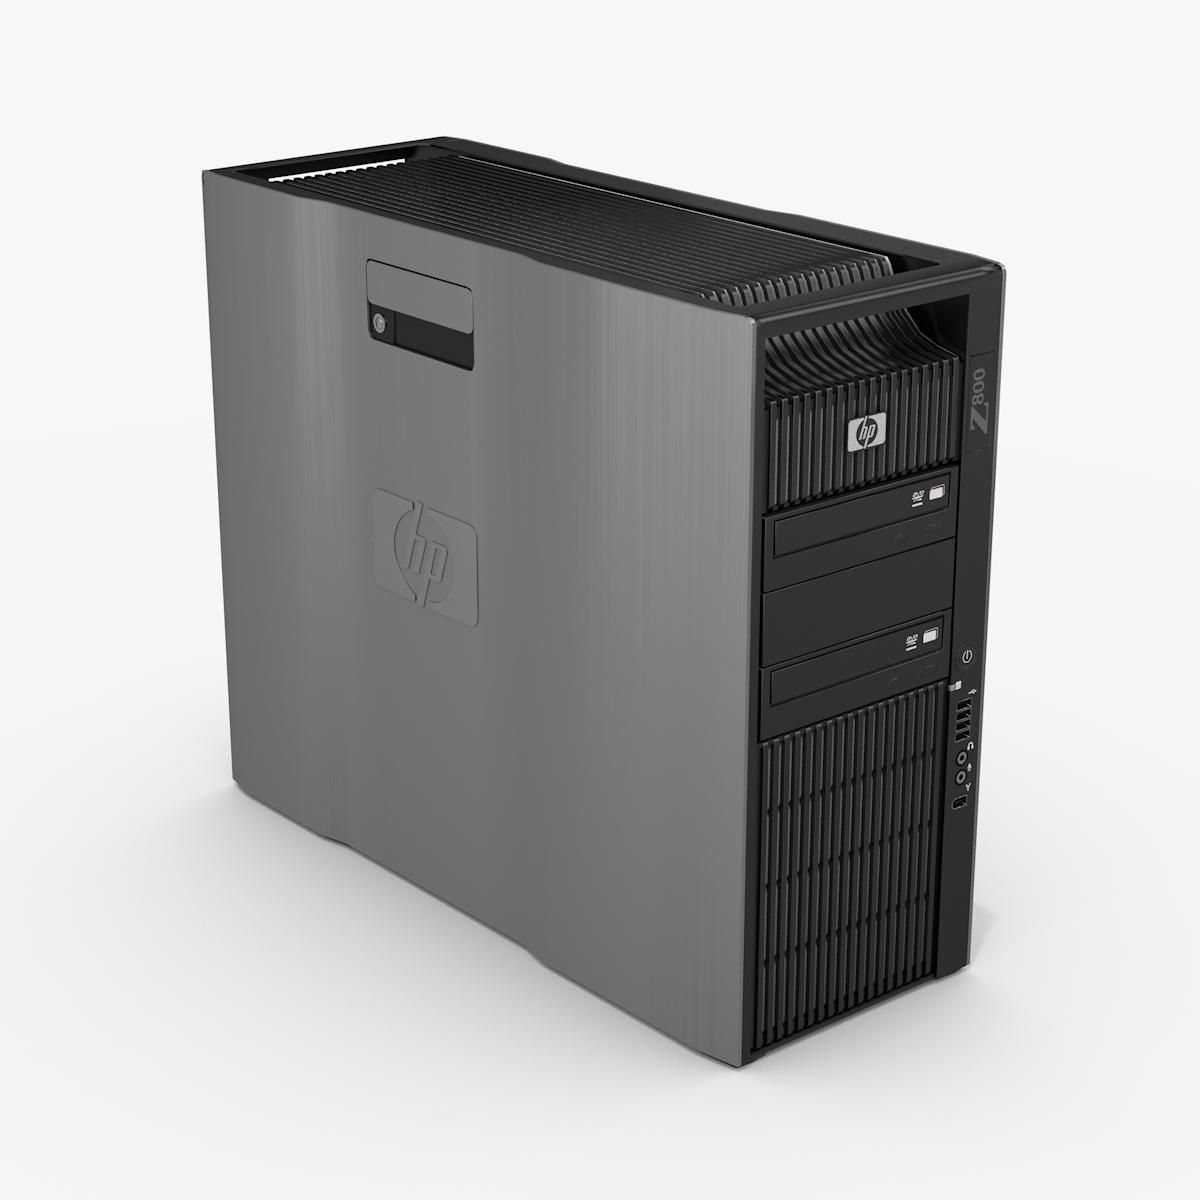 HP Z800 Ex Lease Workstation Tower PC Xeon XEON 6-Core X5650 2.6 Ghz Turbo 3.06GHz 16GB RAM 240GB SSD+2TB HDD DVDRW Nvidia Quadro 5000 2.5GB Graphics Windows 10 Pro